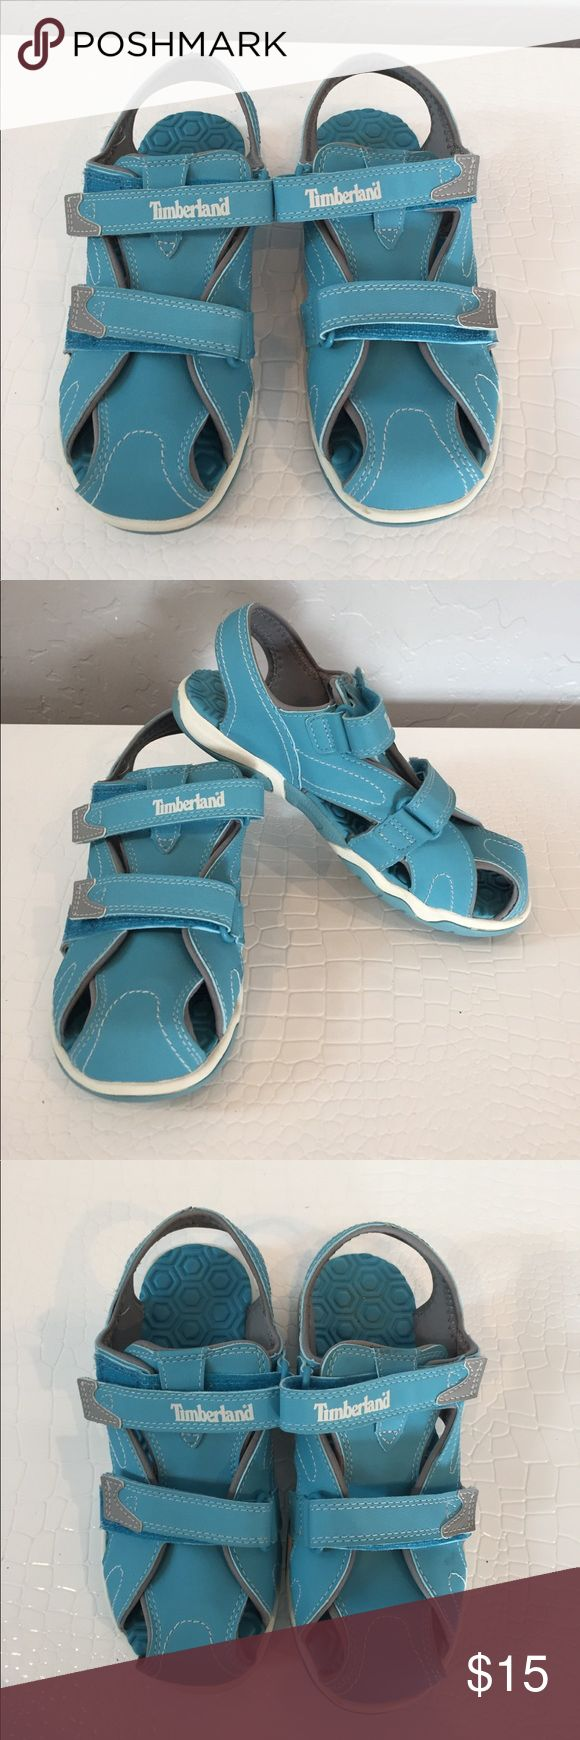 Baby Blue Girls Timberland water shoes size 3 These have been worn 1 time. They are practically new. Comfortable. The 2 Velcro straps make it easy to adjust the shoe to the child foot width Timberland Shoes Water Shoes